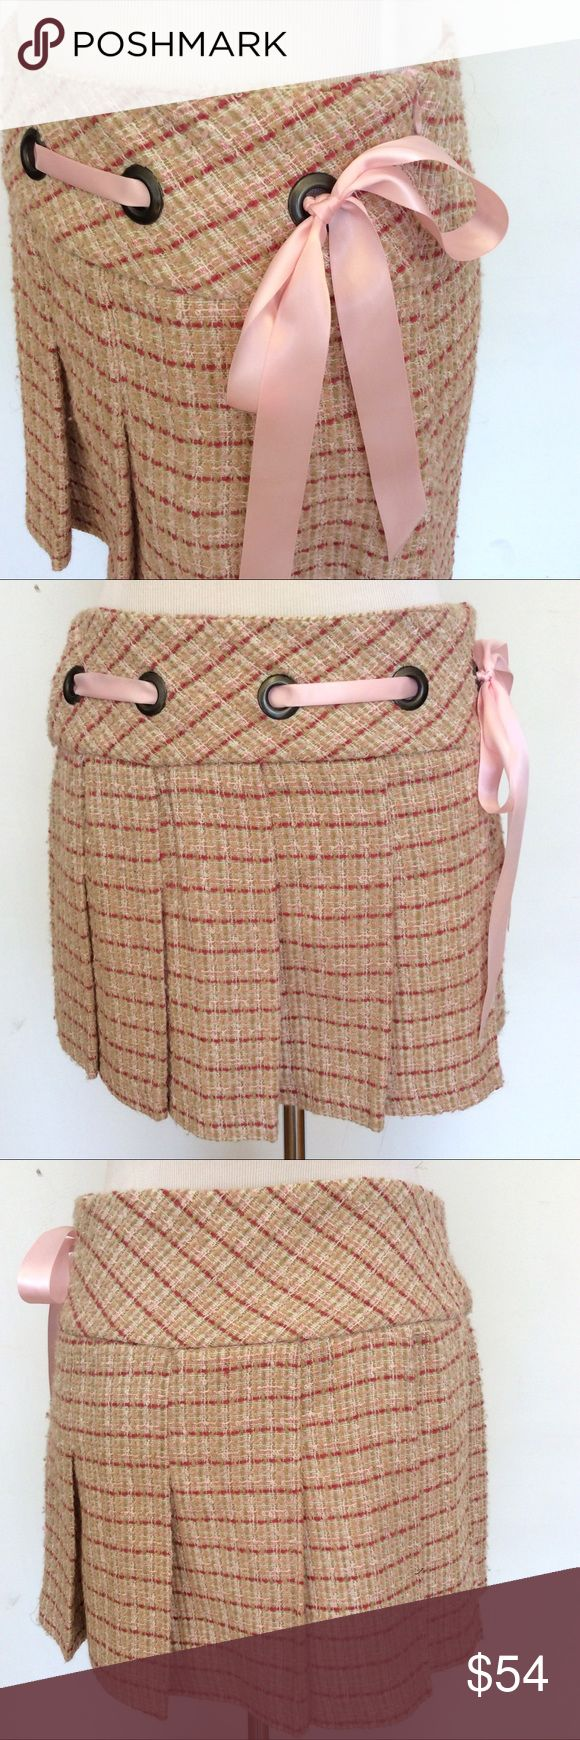 "Guess Jeans Pink Tweed Pleated Bow Punk Skirt XS Guess Pink Green Tweed Plaid Pleated Mini Knee Skirt Bow Cosplay Anime XSmall  Soooo cute! Light pink/beige/green tweed patterned pleated skirt with ribbon lacing through the top. Side zipper.   Heavier fabric and great for colder weather! A fun and flirty skirt that could also work well with anime & cosplay costumes. :)   Barely worn and in excellent condition!  Size: Extra Small Waist/Hips (flat): 14.5"" Length: 13""  100% Acrylic.  Please…"